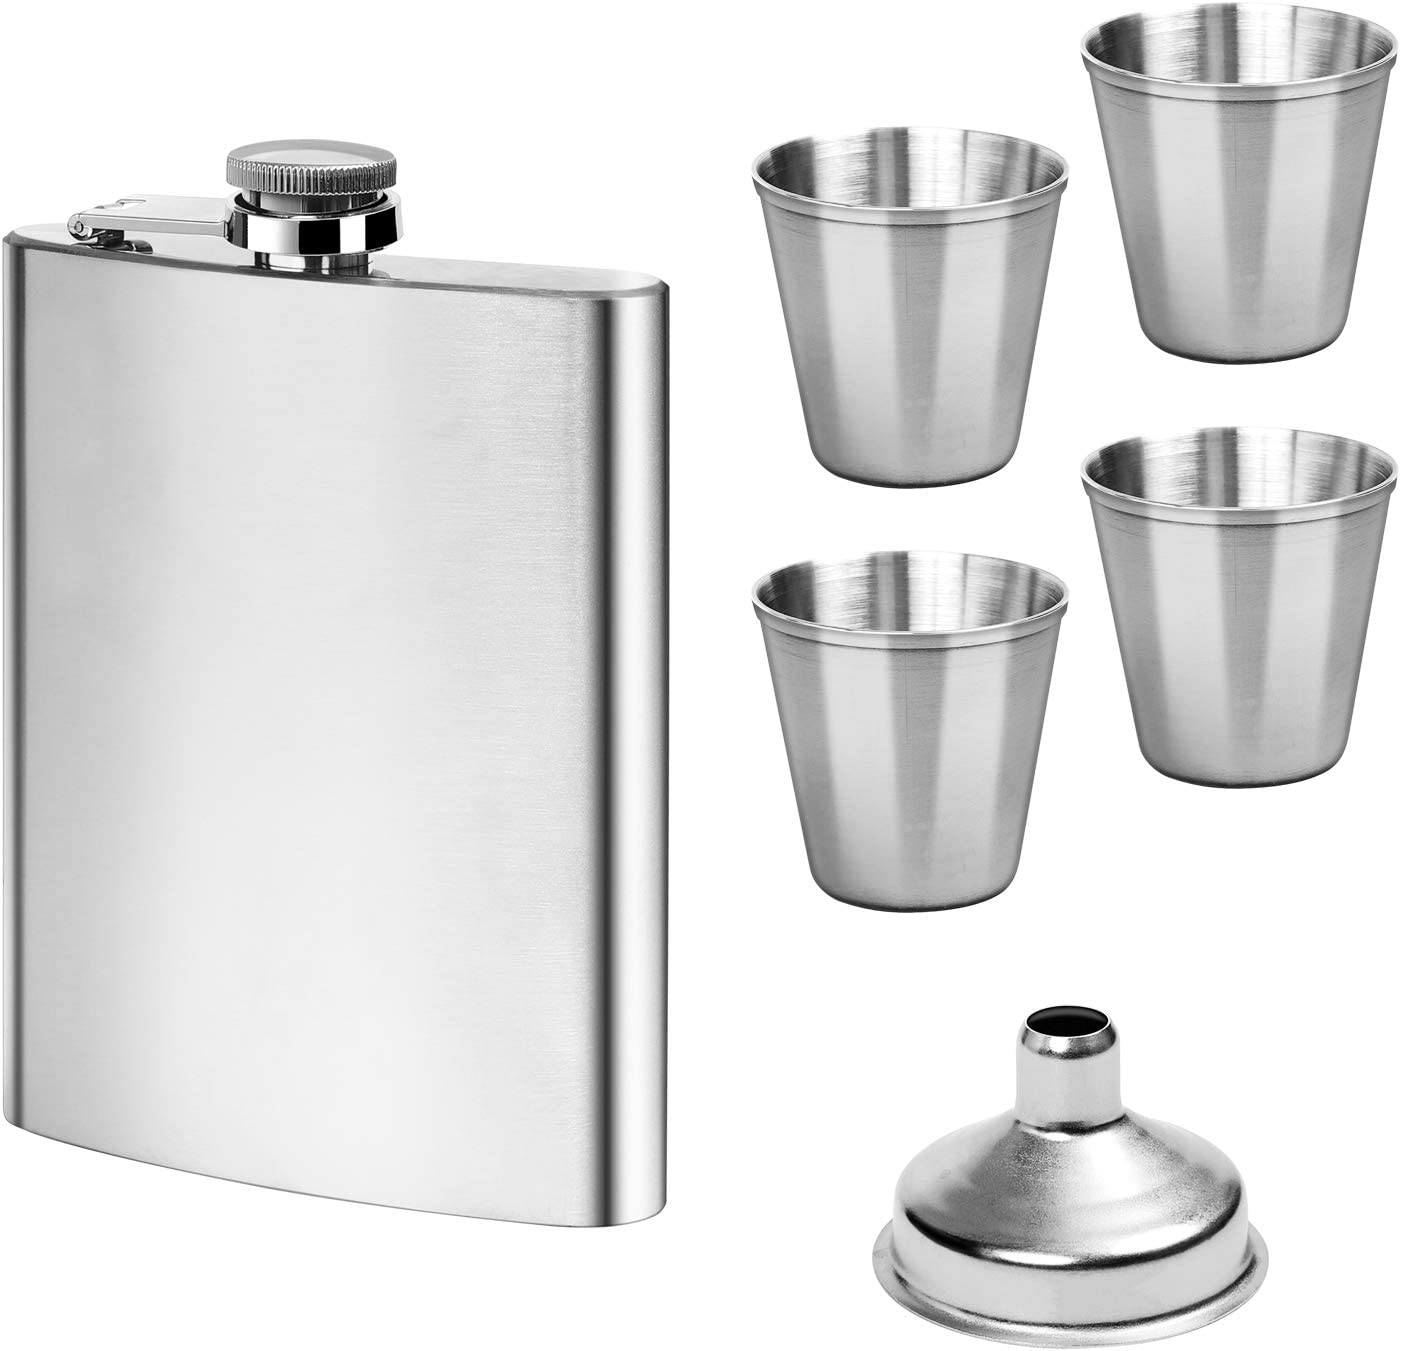 Hip Flask Set 8oz Flask Funnel Stainless Steel 4 Cups